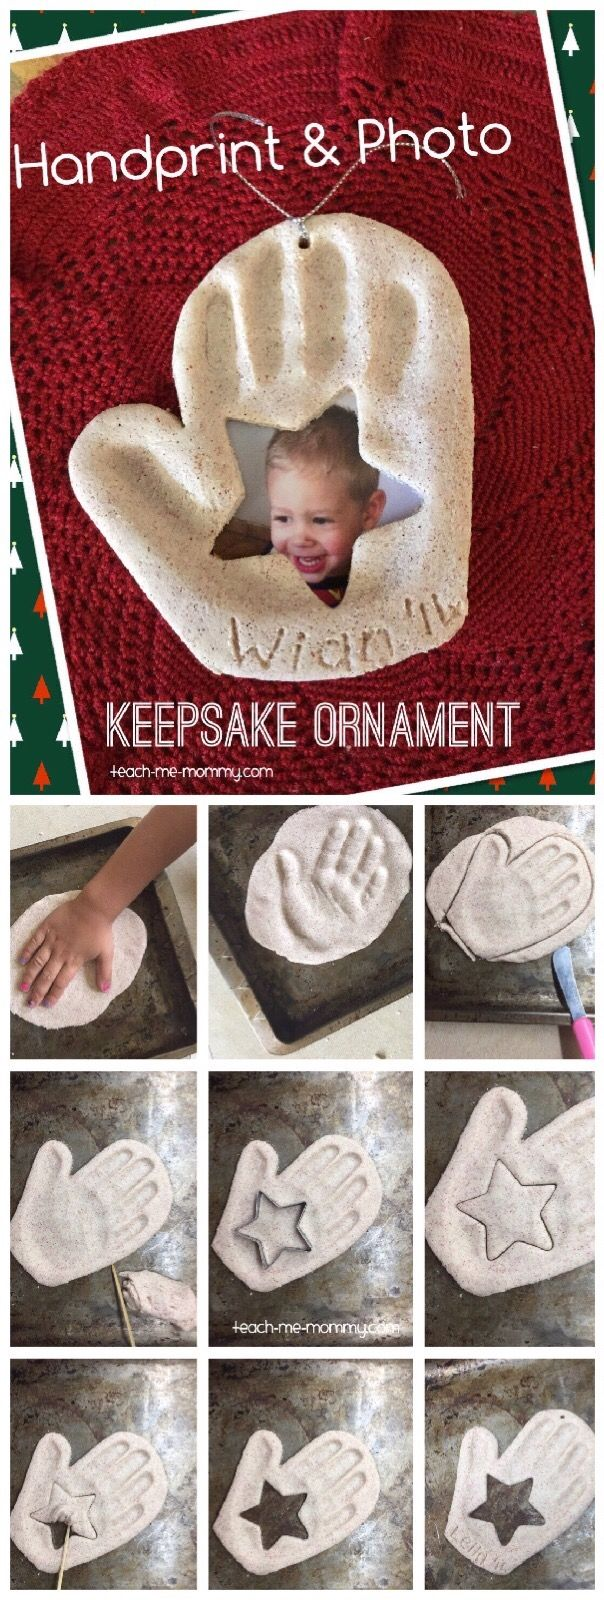 Handprint & Photo Keepsake Ornament. An adorable keepsake you make with salt dough. Great gift idea!